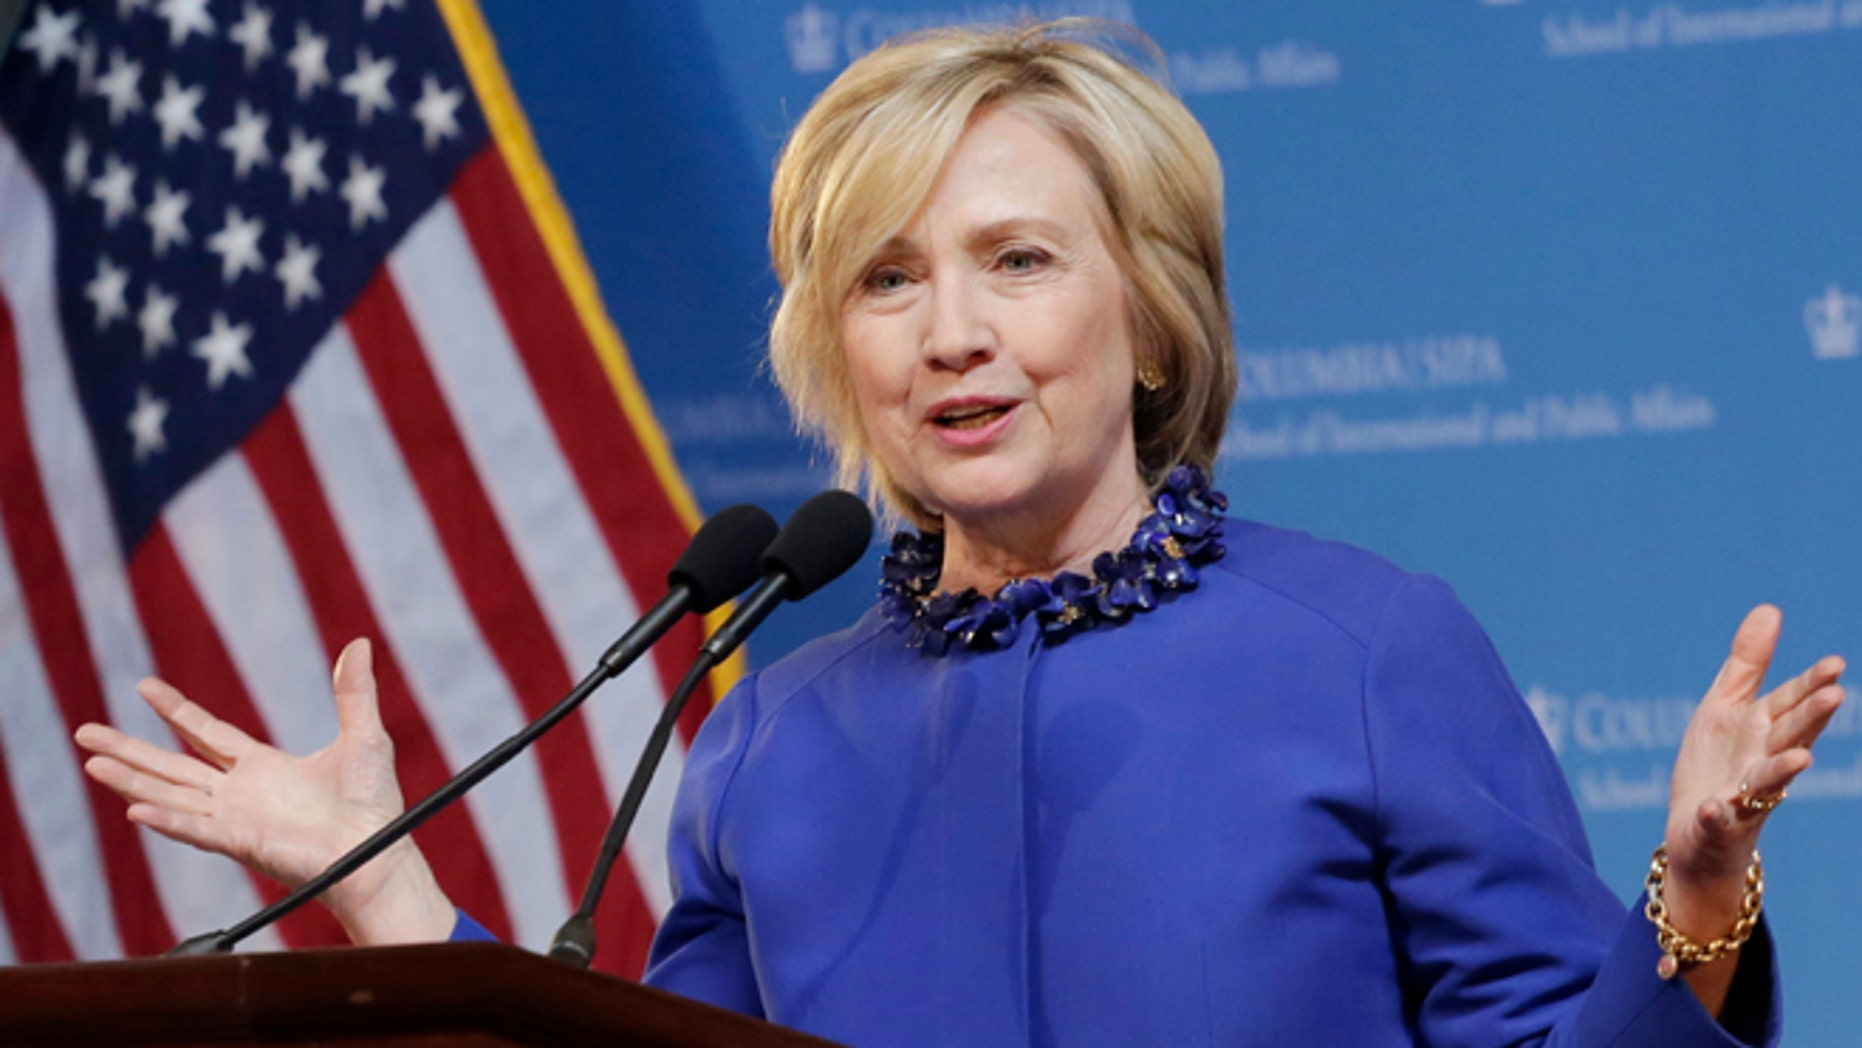 April 29, 2015: Hillary Clinton speaks at the David N. Dinkins Leadership and Public Policy Forum in New York.